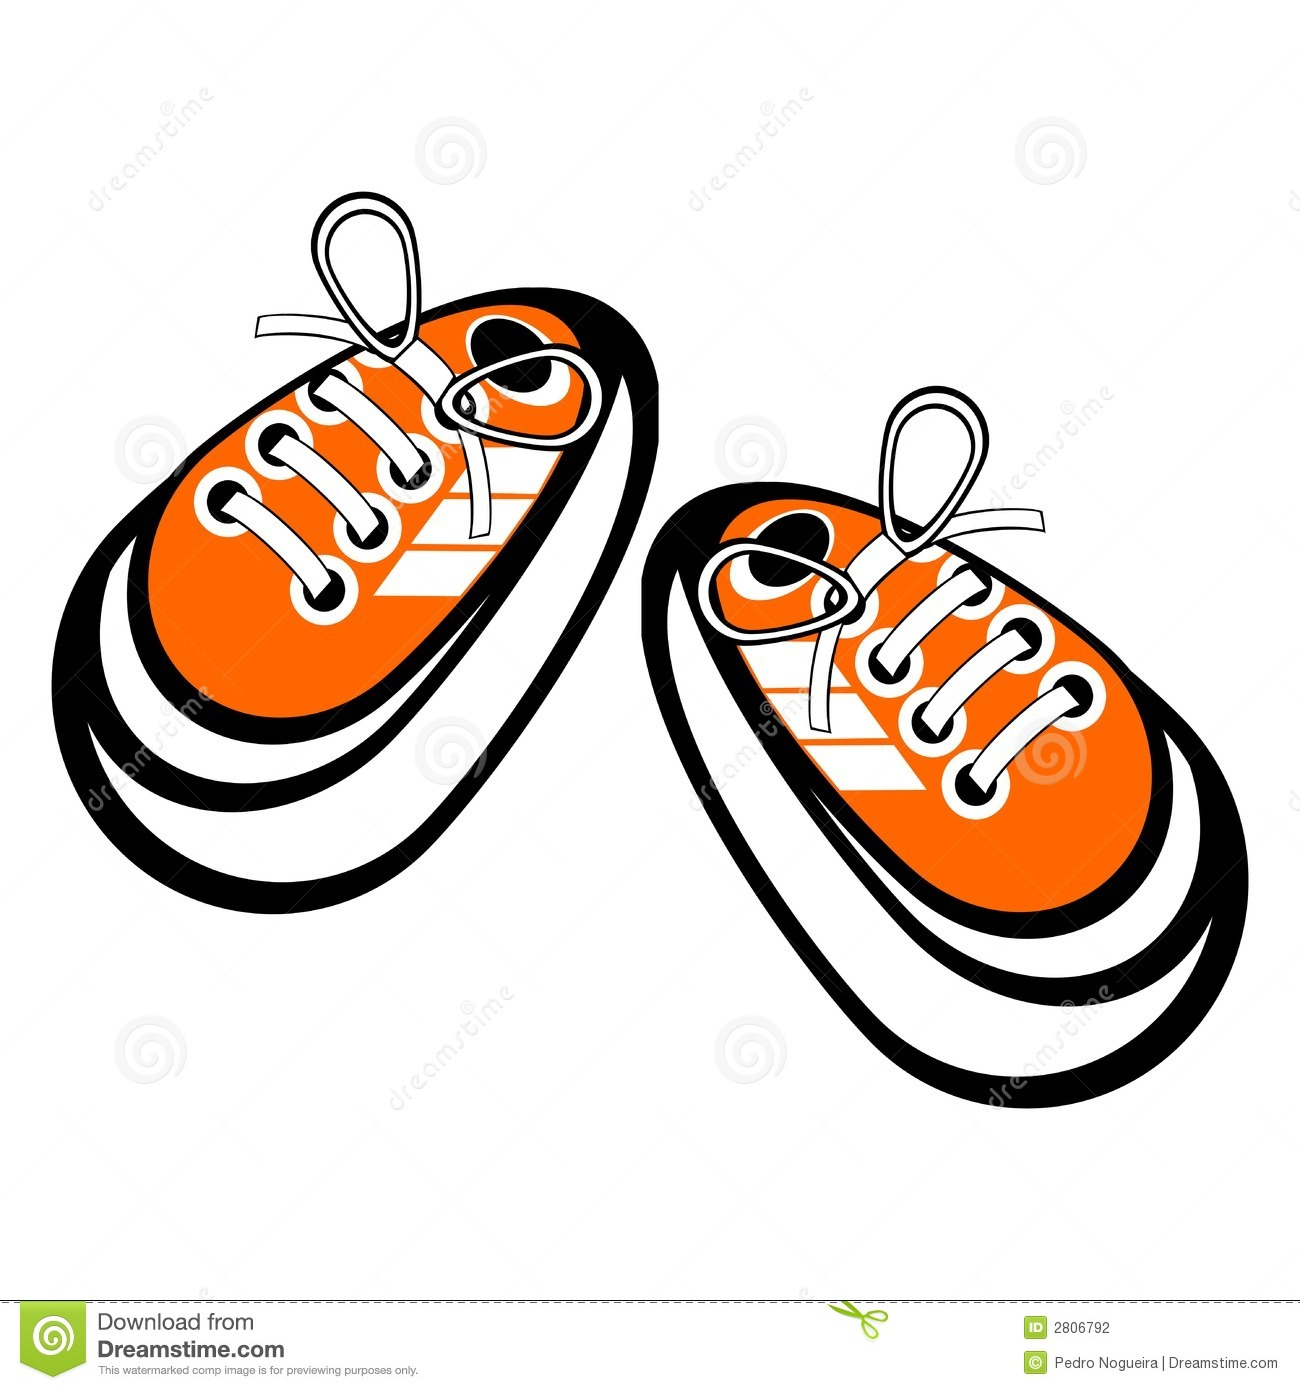 Adidas clipart untied shoe Clipart nike%20running%20shoes%20clipart Panda Clipart Free